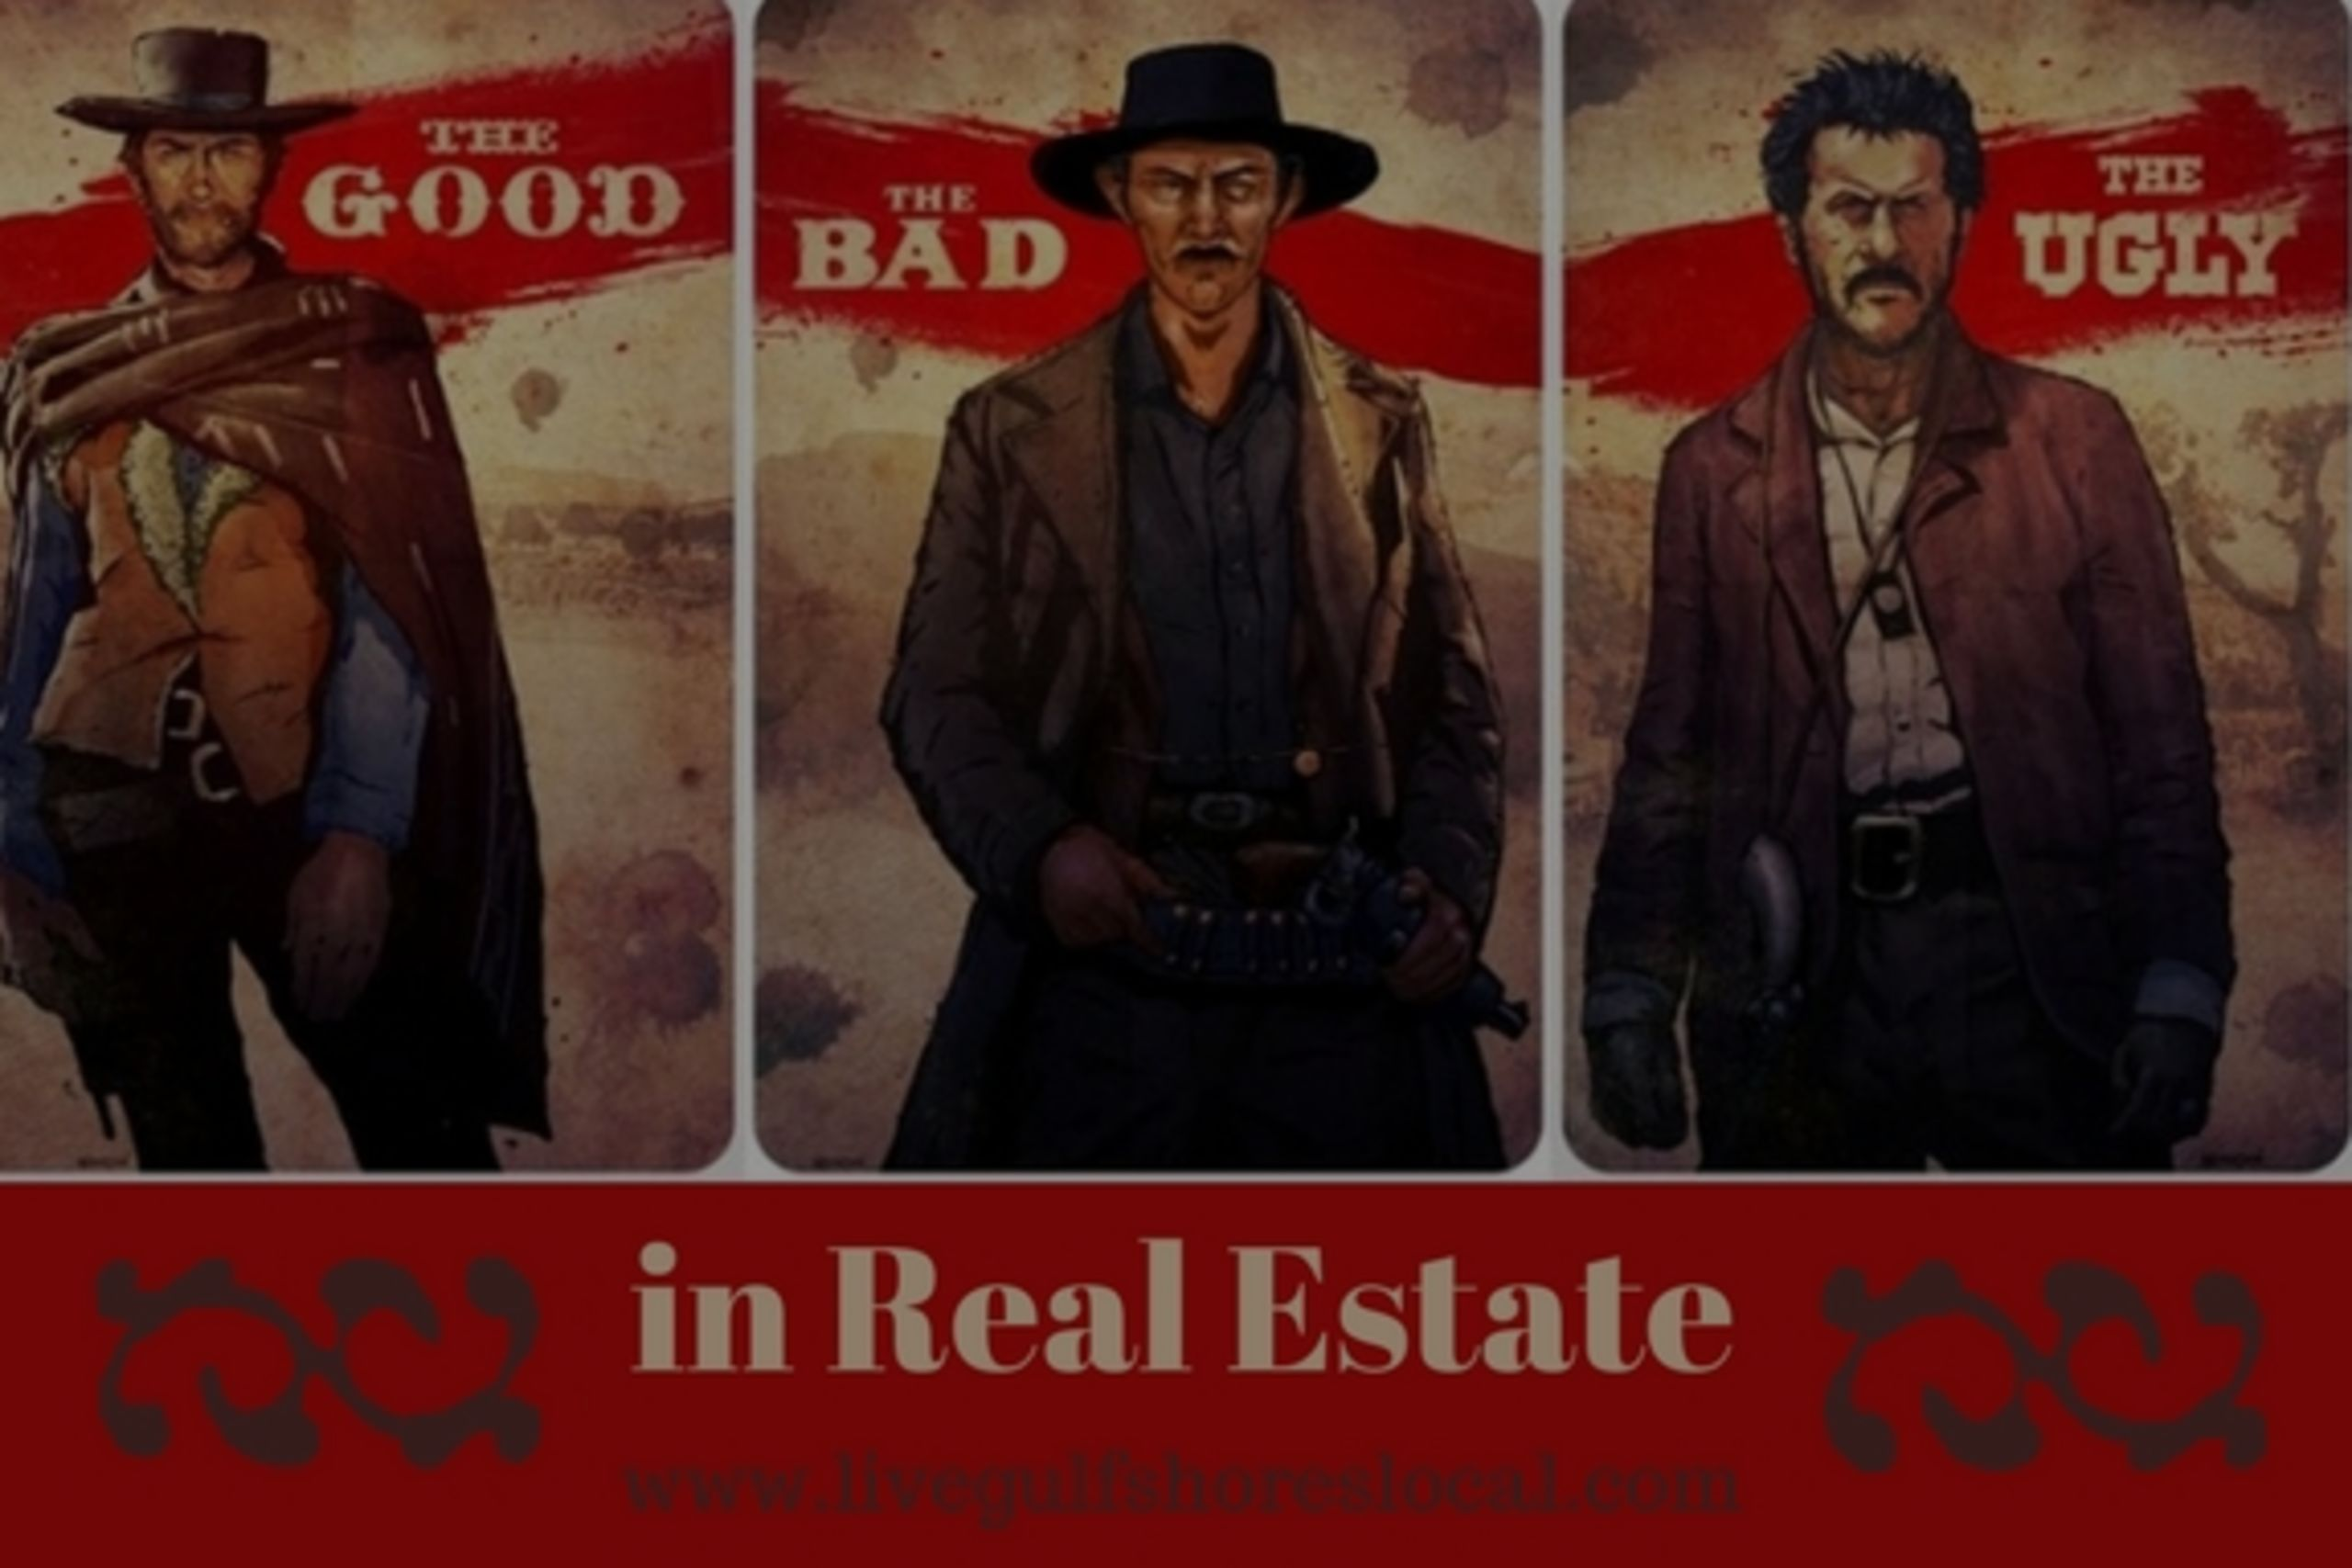 Real Estate – The Good, the Bad, and the Ugly